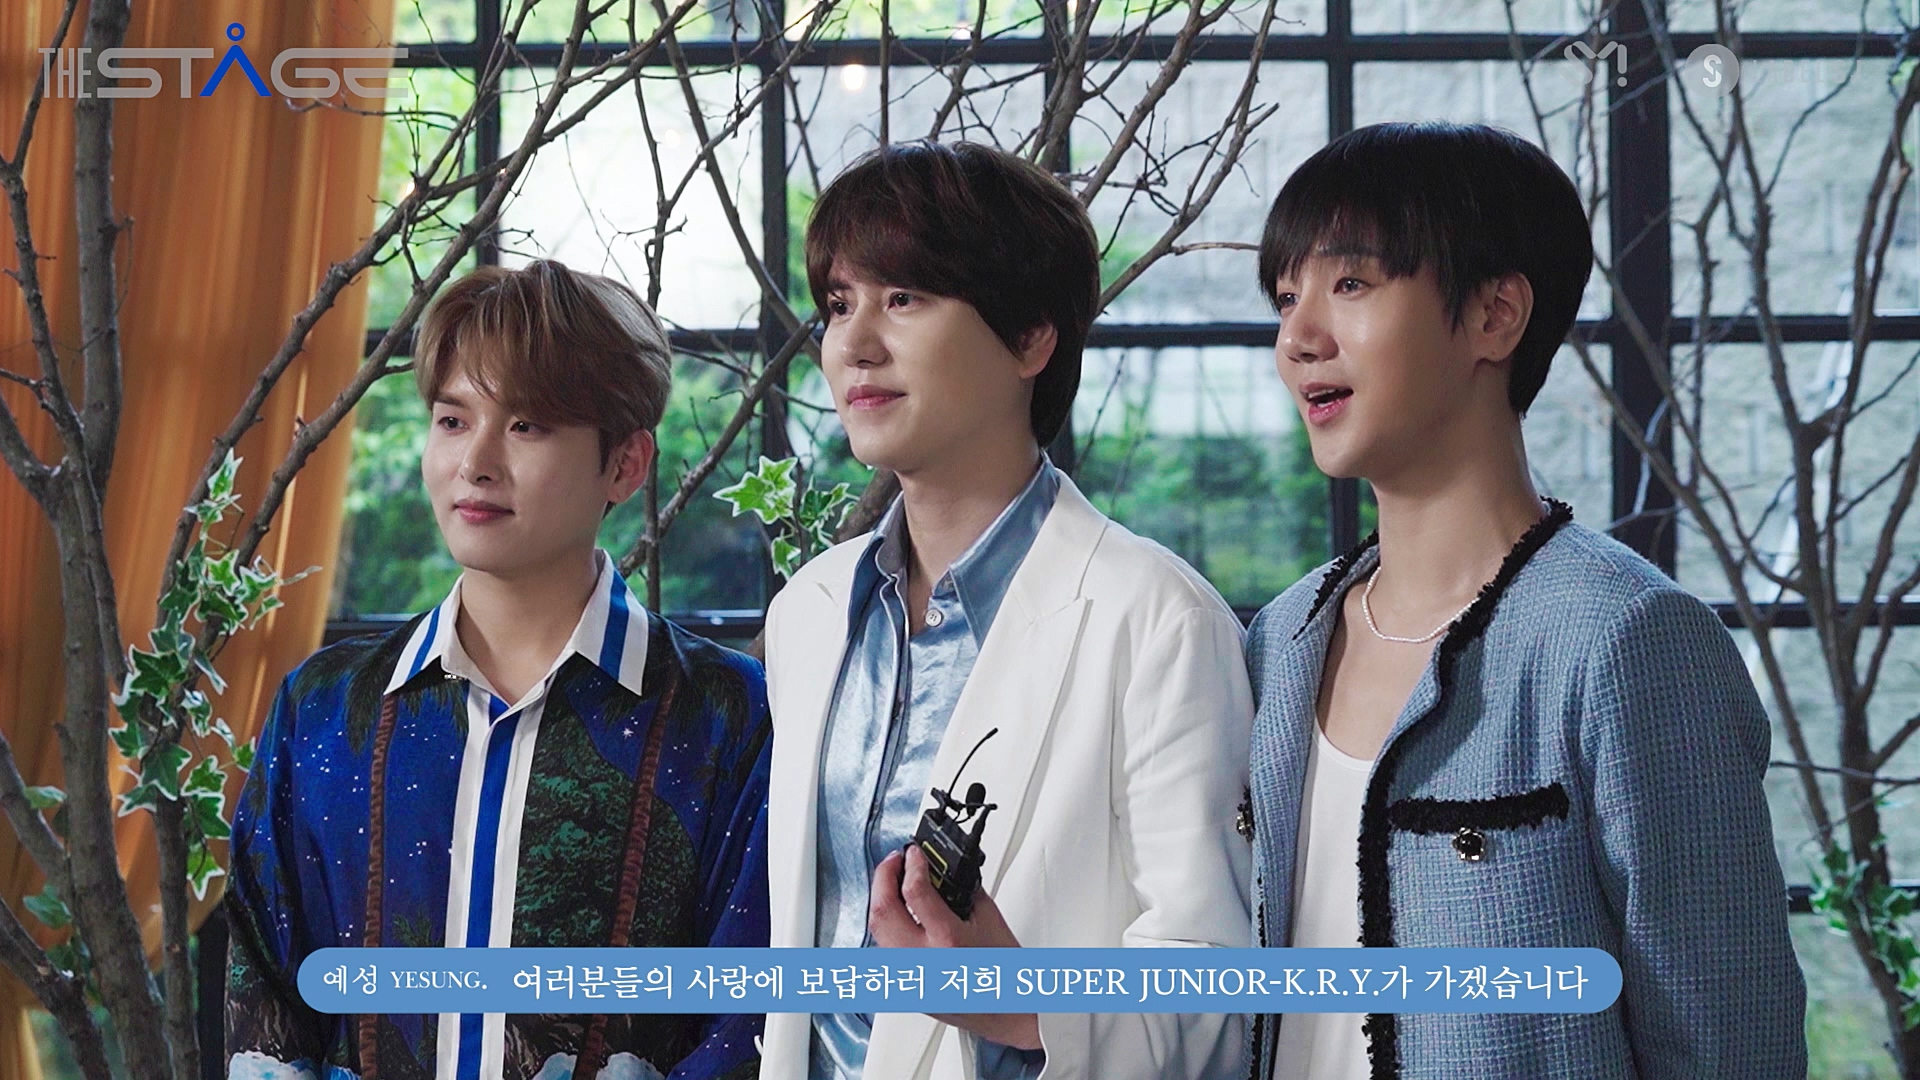 SUPER JUNIOR-K.R.Y. THE STAGE Behind The Scenes